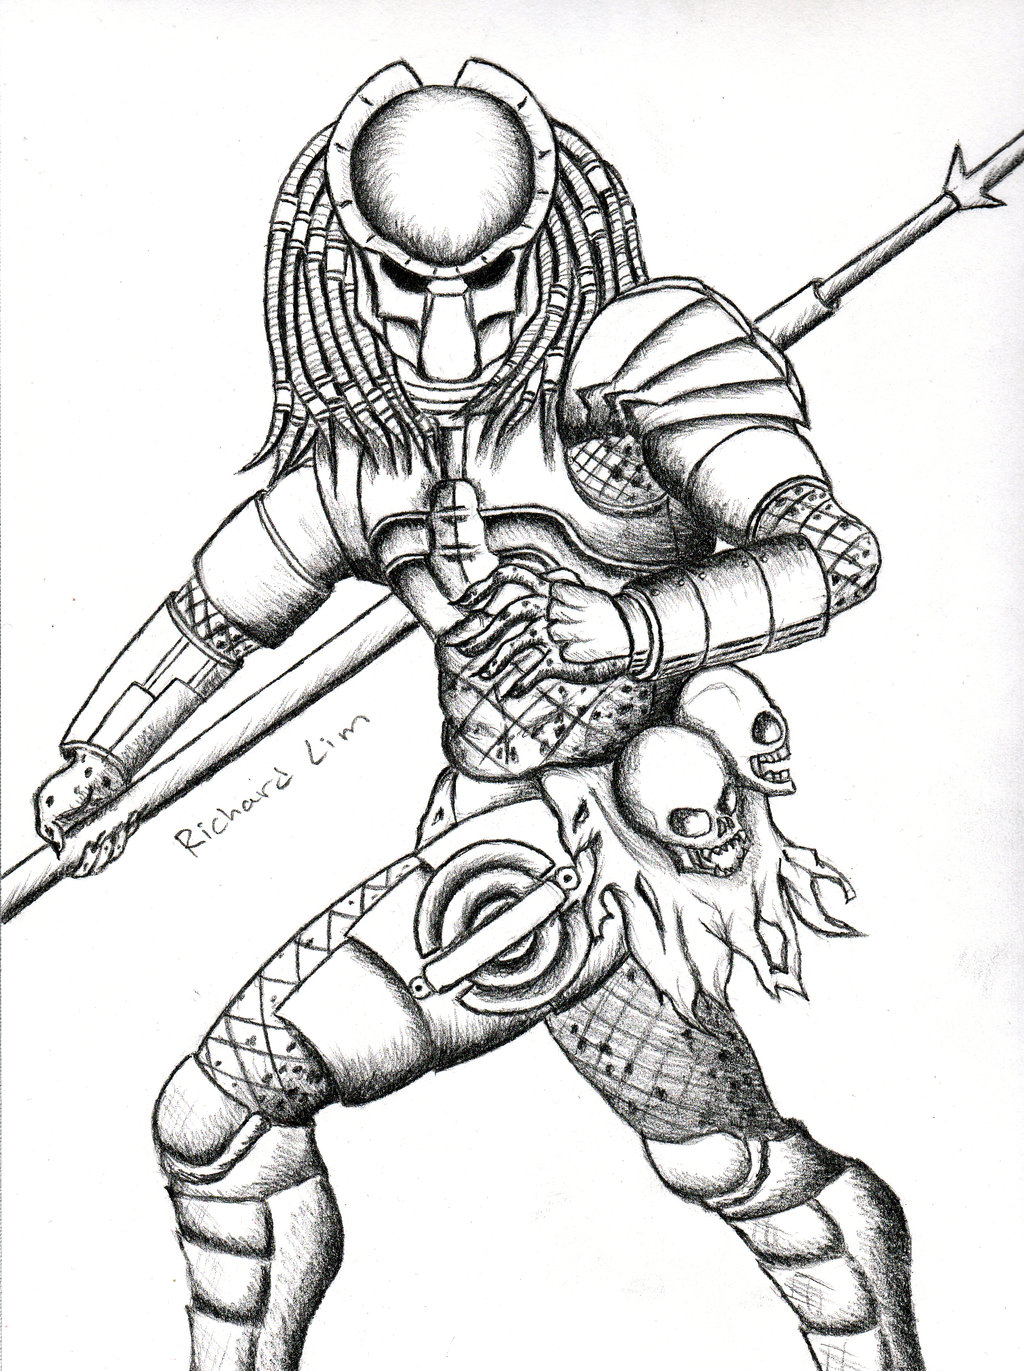 Drawn predator tracker Predator klejonka by Drawings Cool